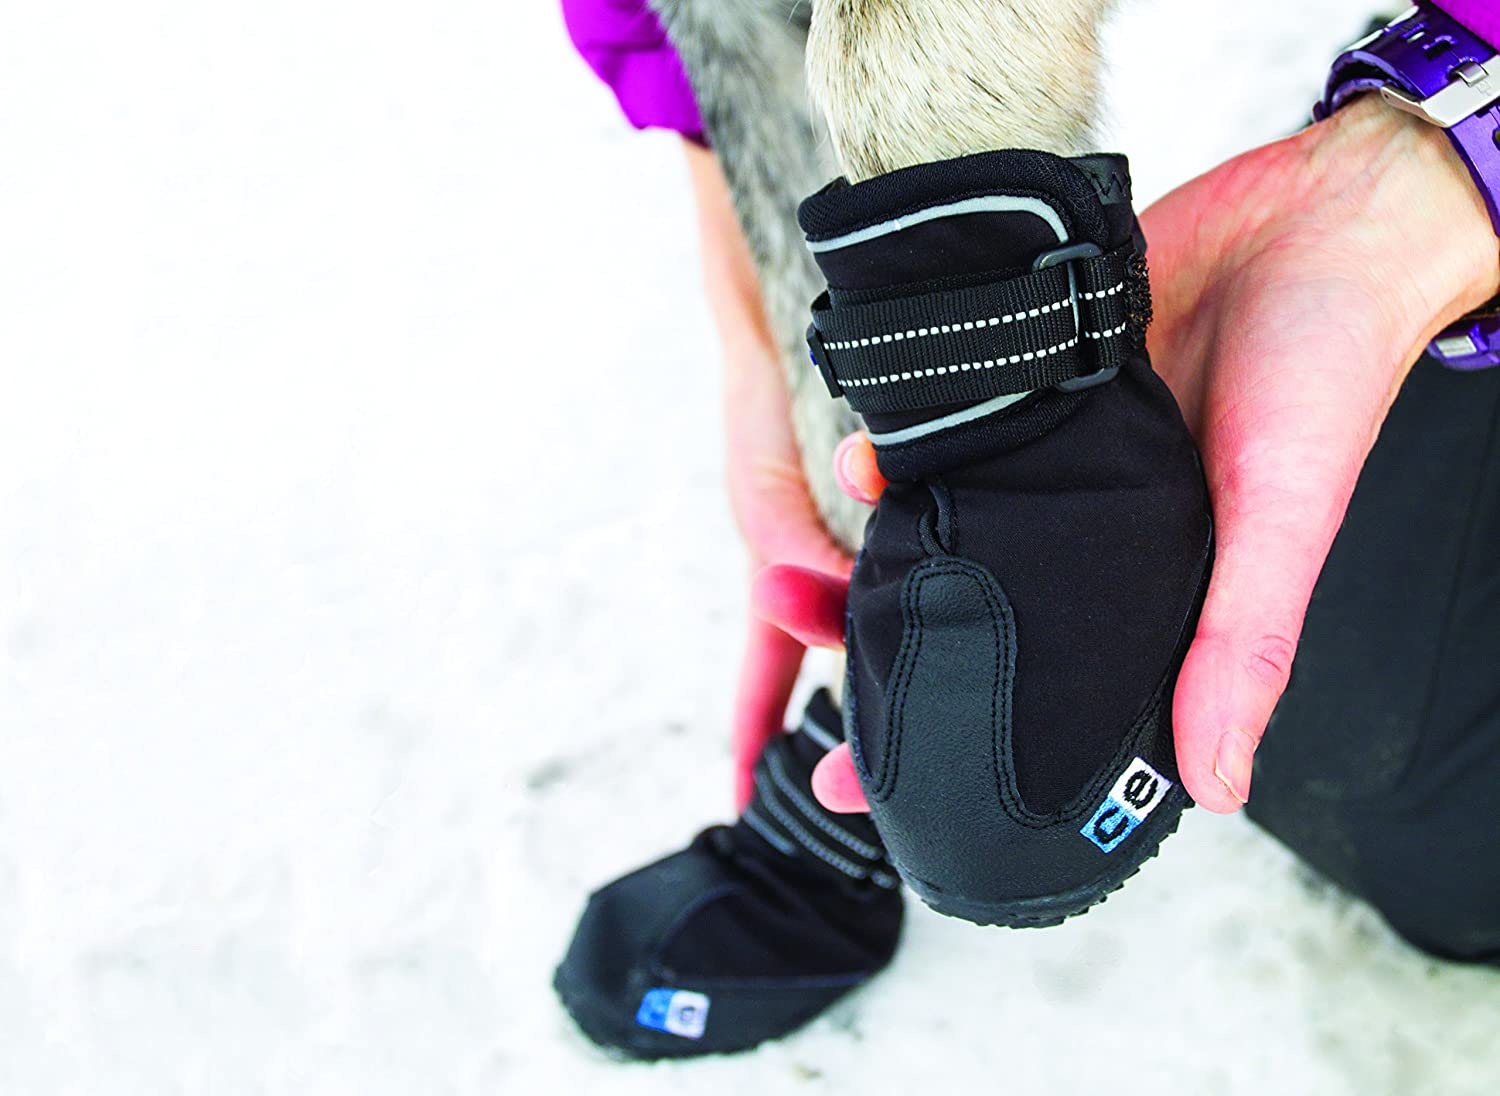 Equipement trail boutique running sports outdoor shop - Amazon Com Canine Equipment Ultimate Trail Dog Boots Large Black Pet Boots Pet Supplies